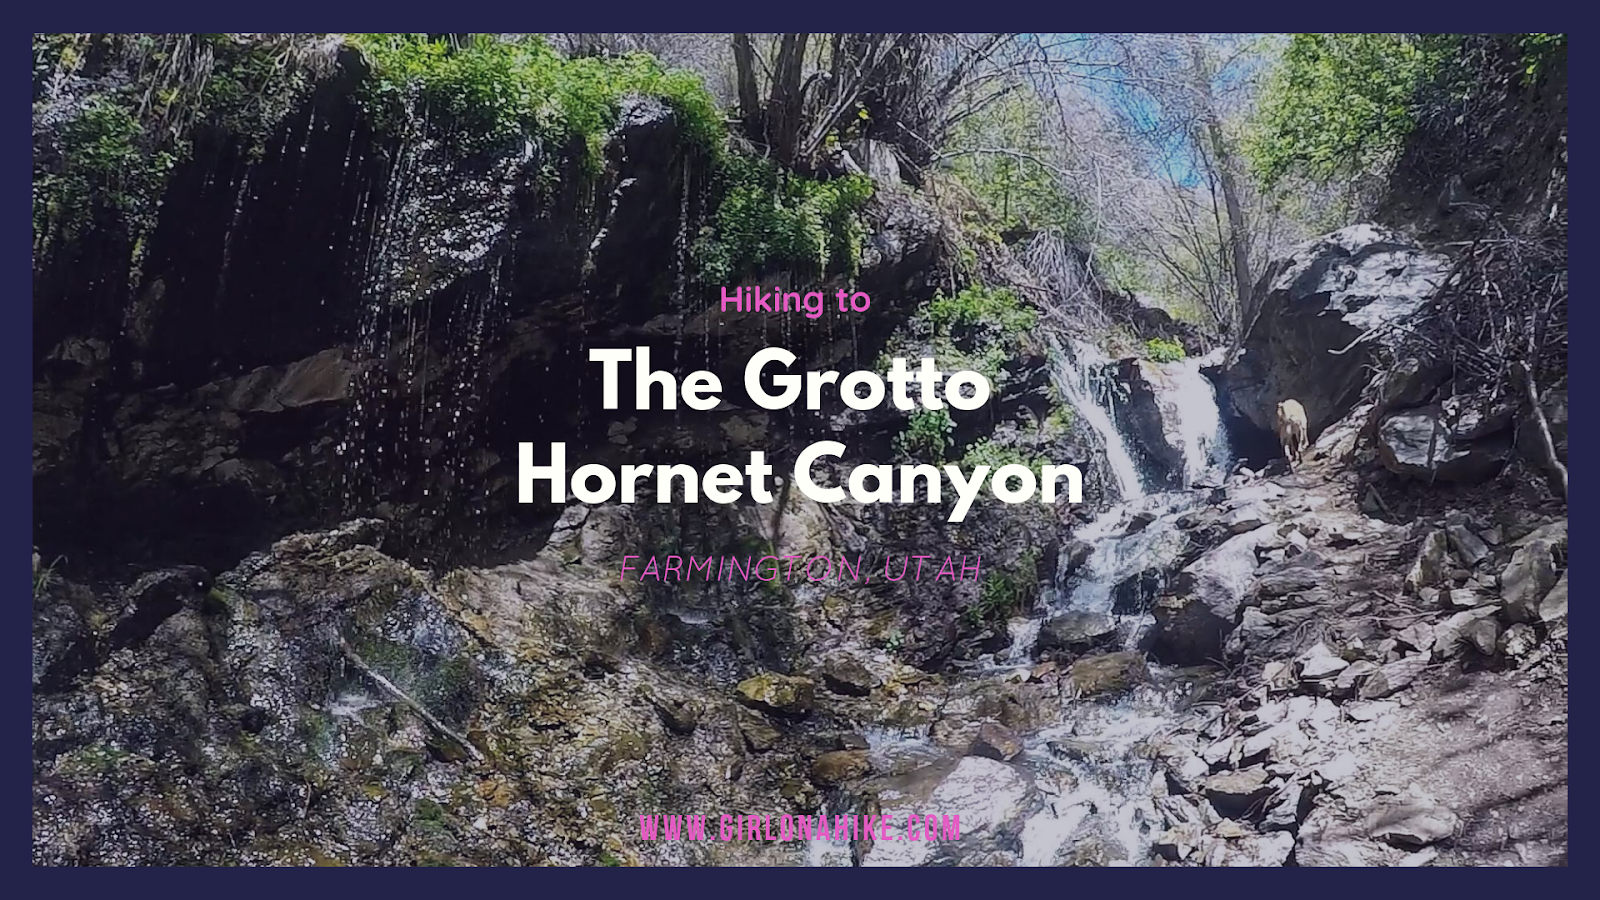 Hiking to the Grotto - Hornet Canyon